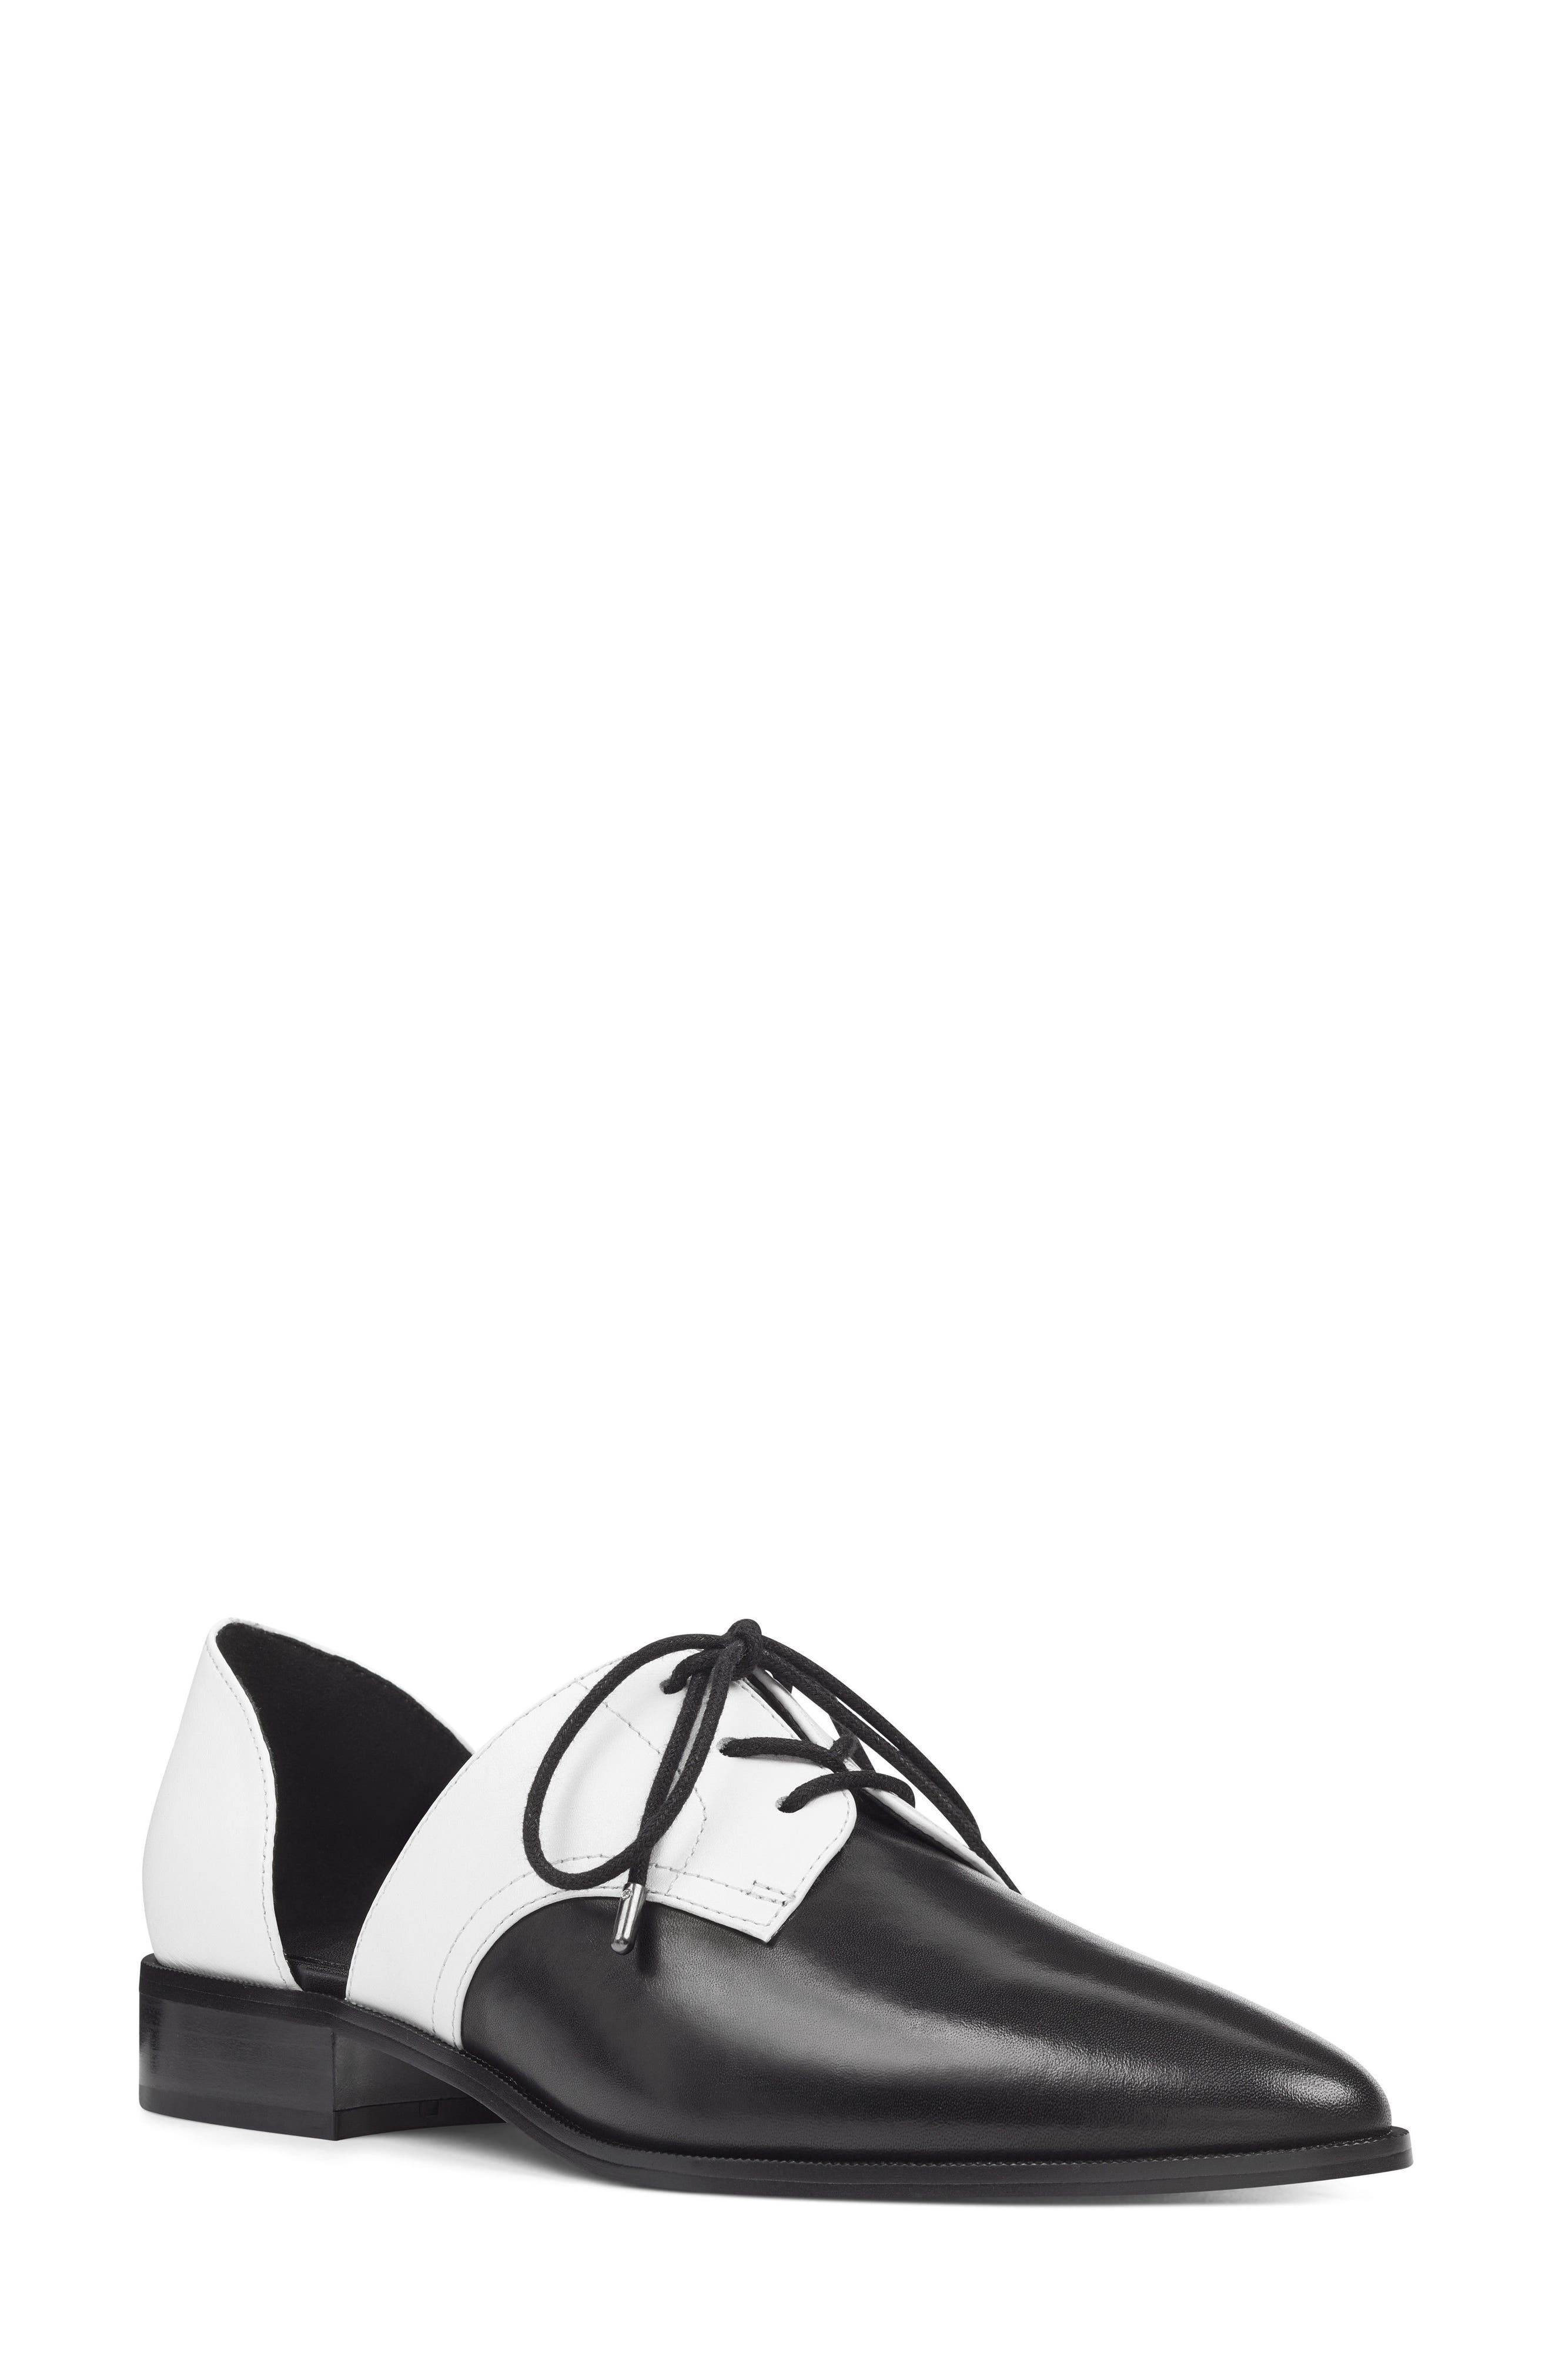 Watervelt Oxford,                         Main,                         color, BLACK/ WHITE LEATHER